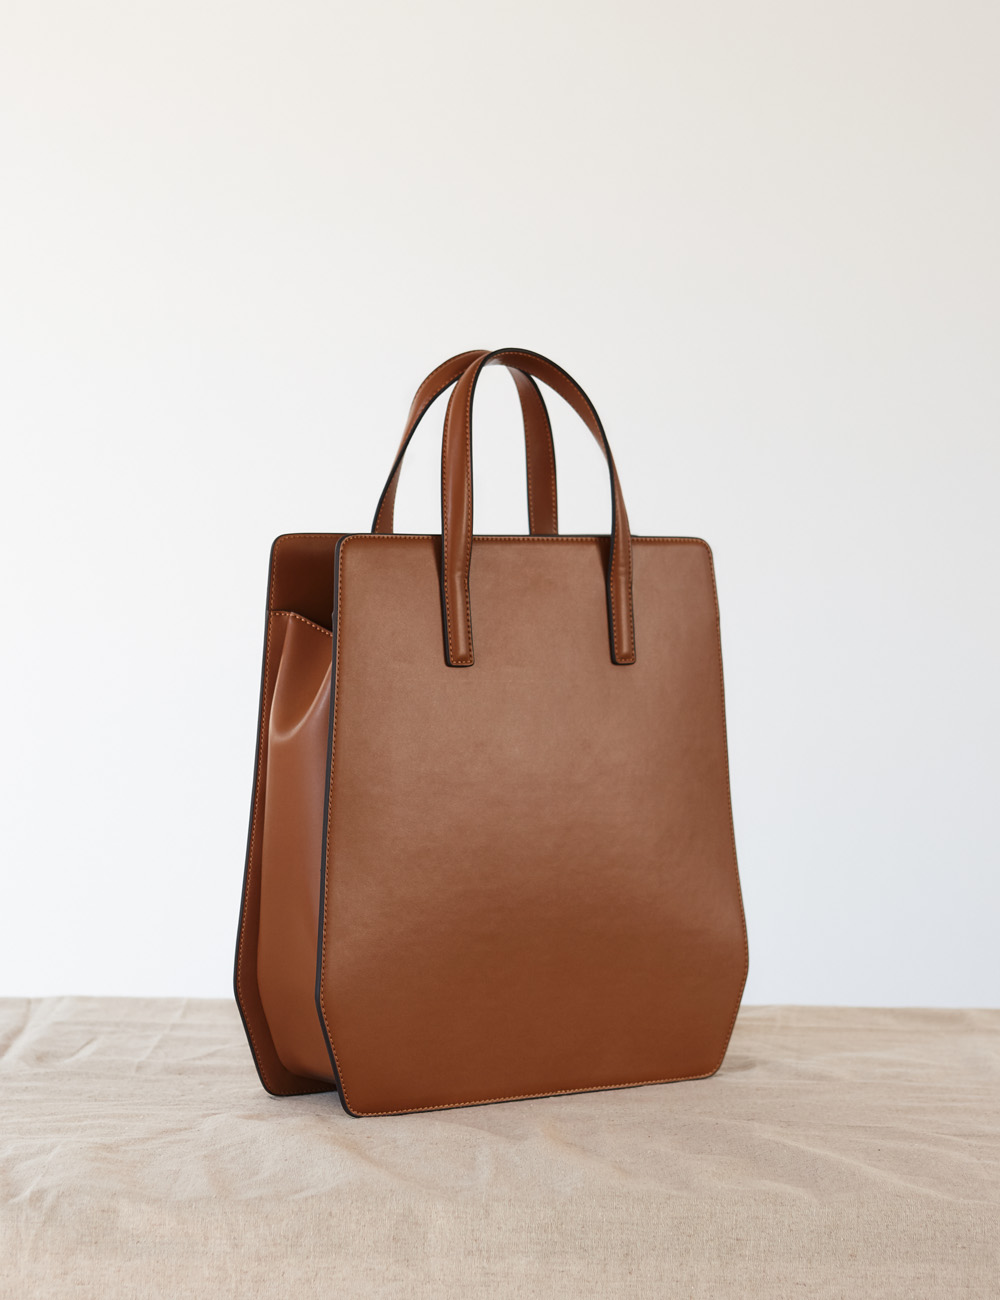 MAISON246,246 ABBA BAG - TAN,No.246